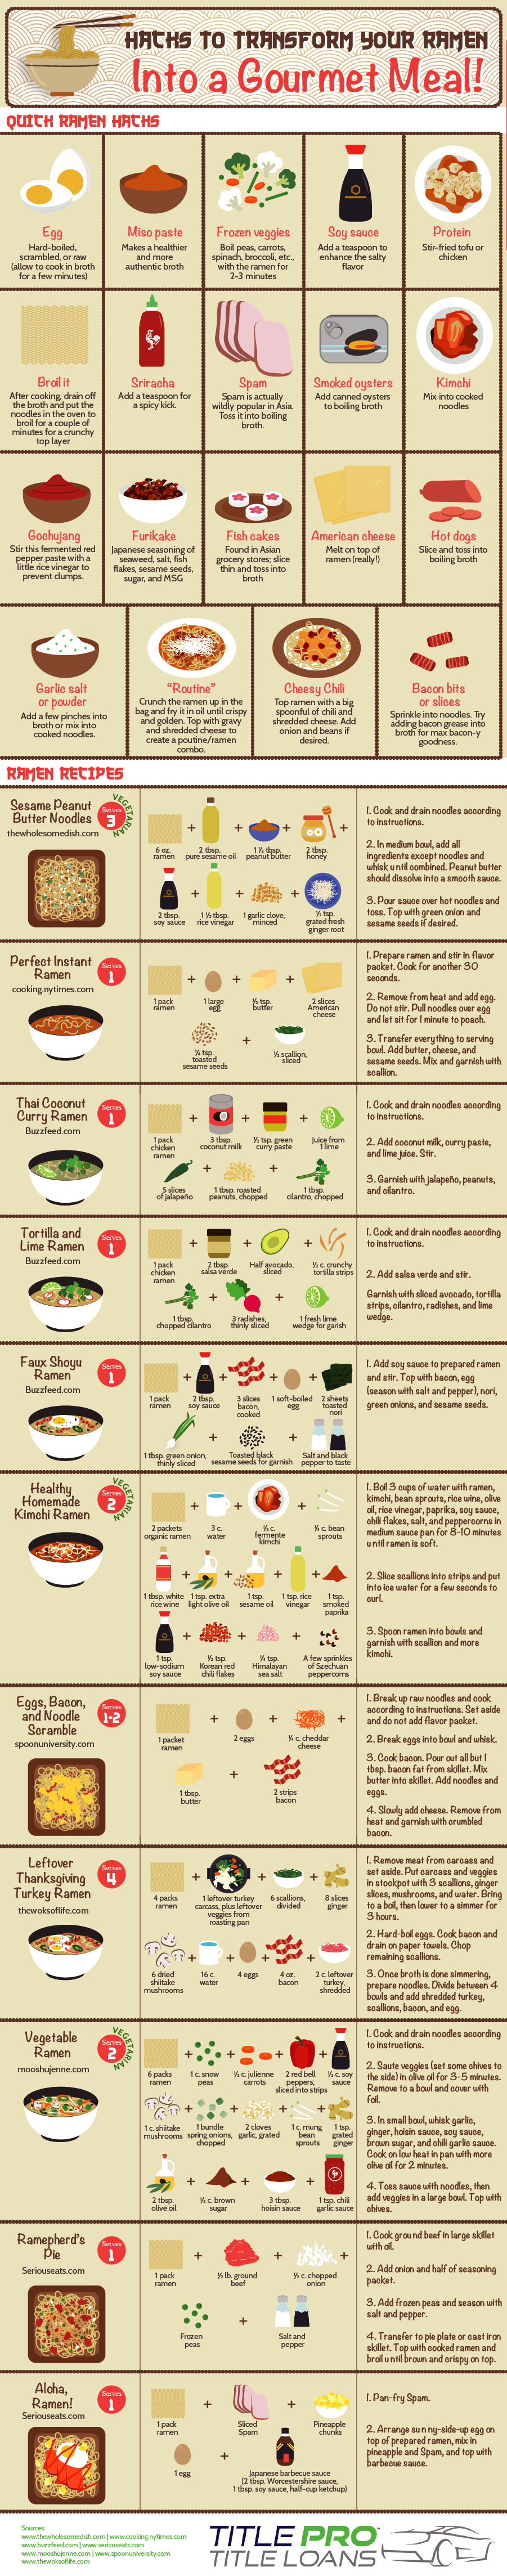 30 Amazing Recipes for Gourmet Ramen Meals - Infographic